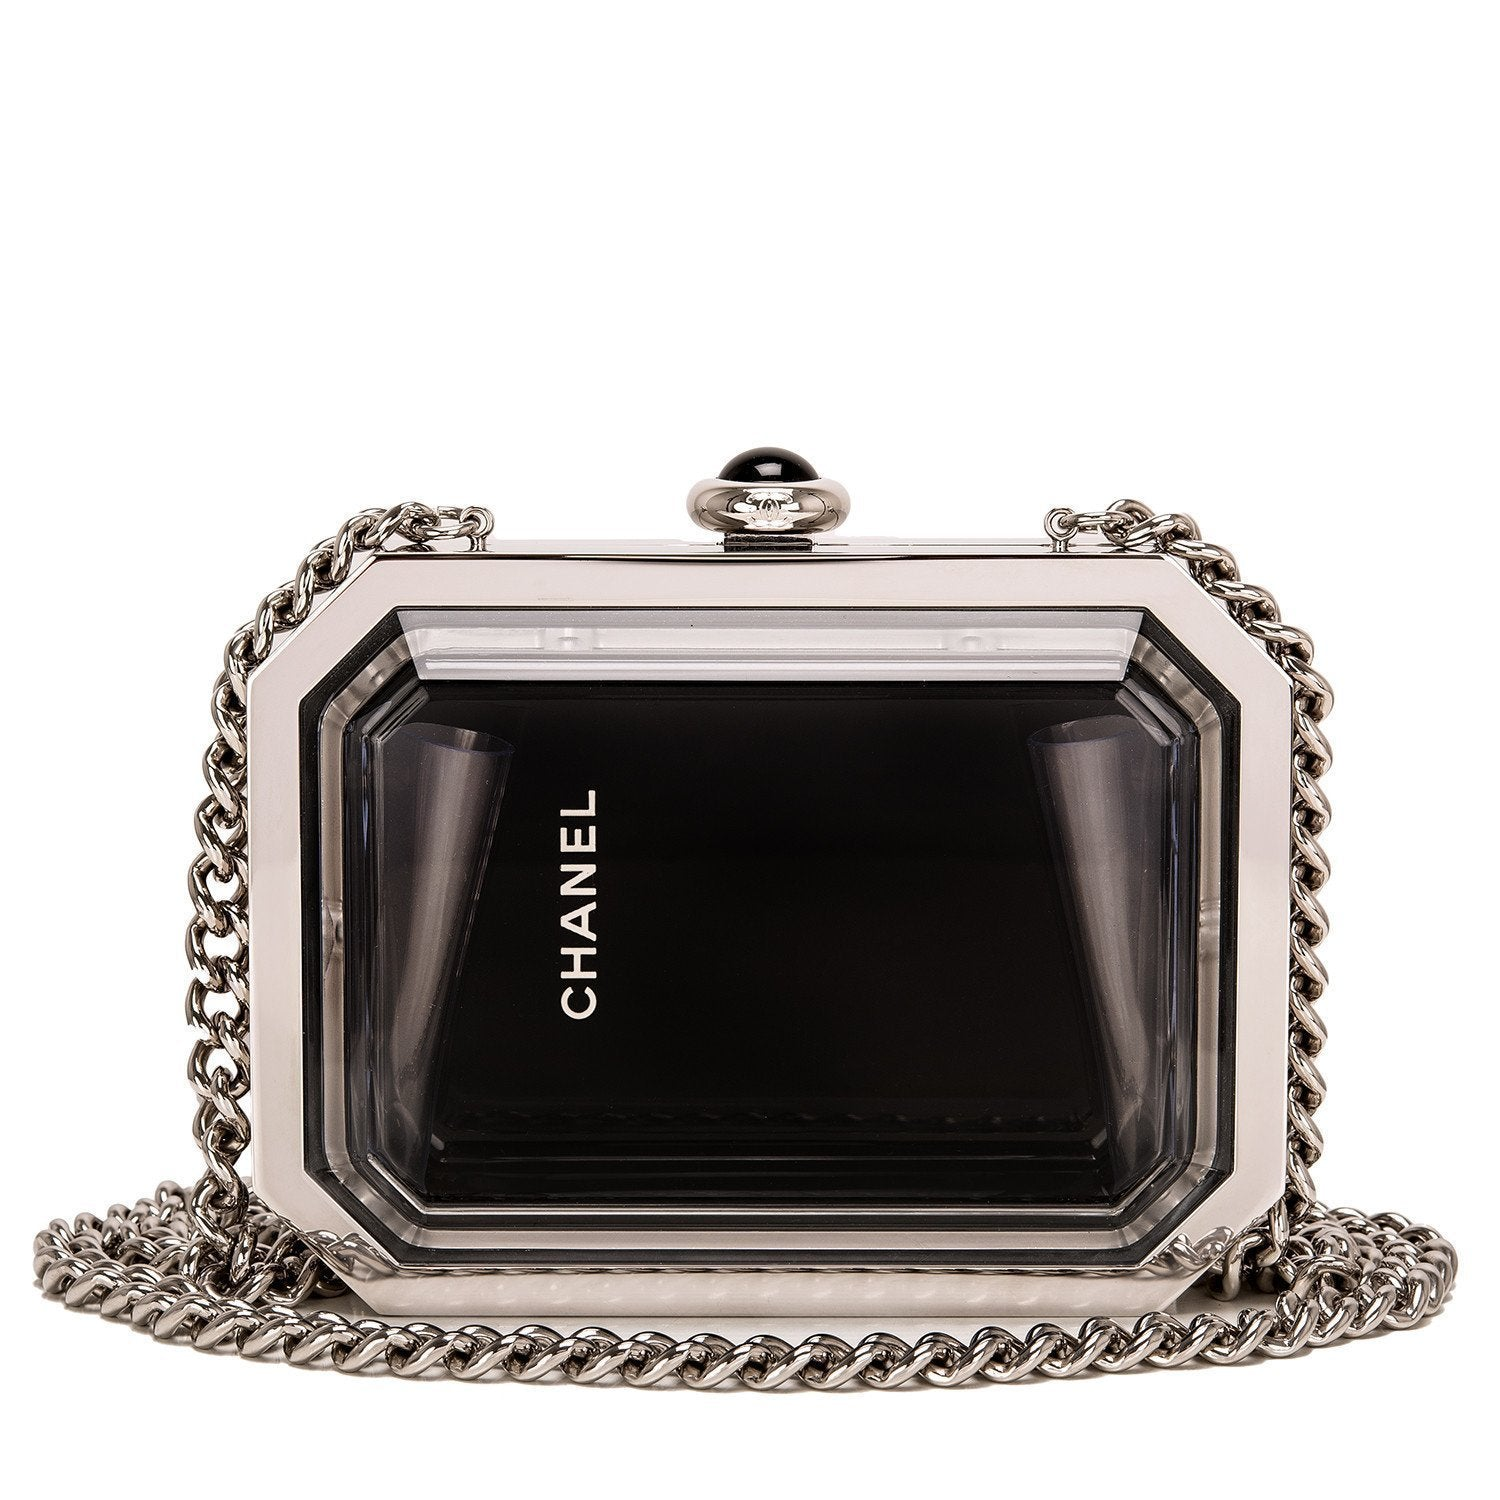 e83d04222 Chanel Premiere Watch Minaudiere Clutch Runway Bag – Madison Avenue Couture